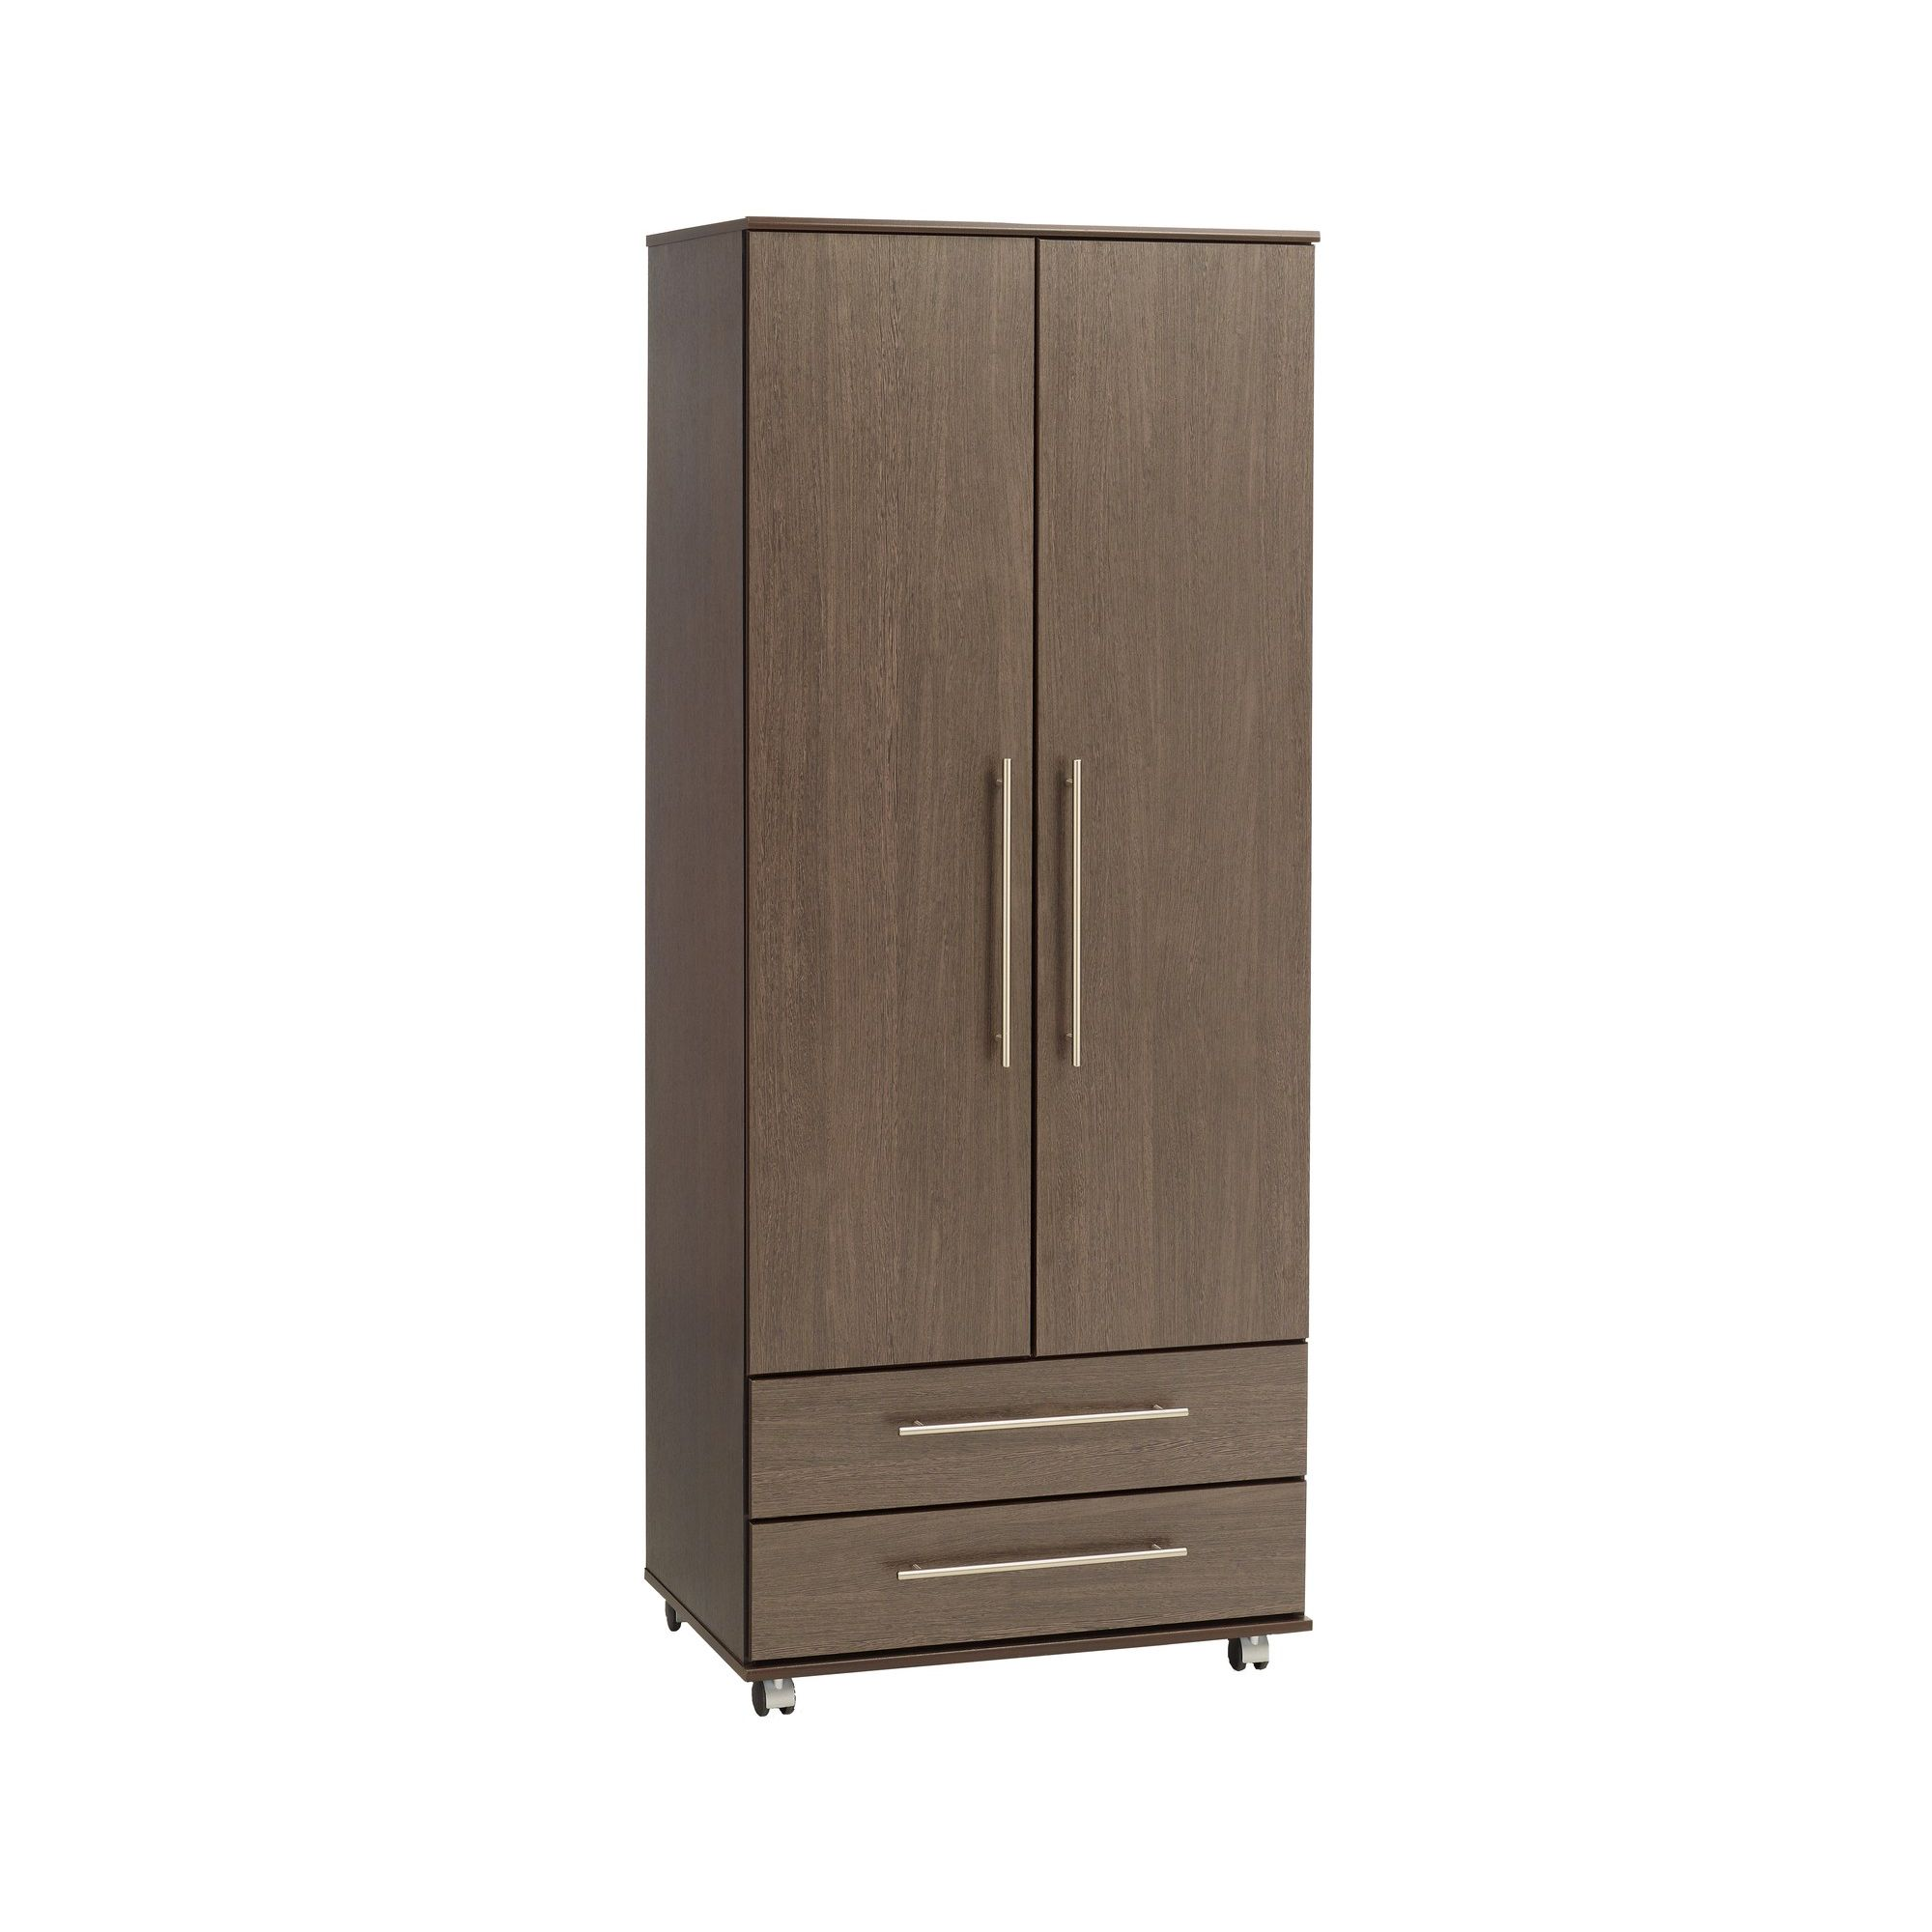 Ideal Furniture New York Combi Wardrobe - Wenge at Tesco Direct